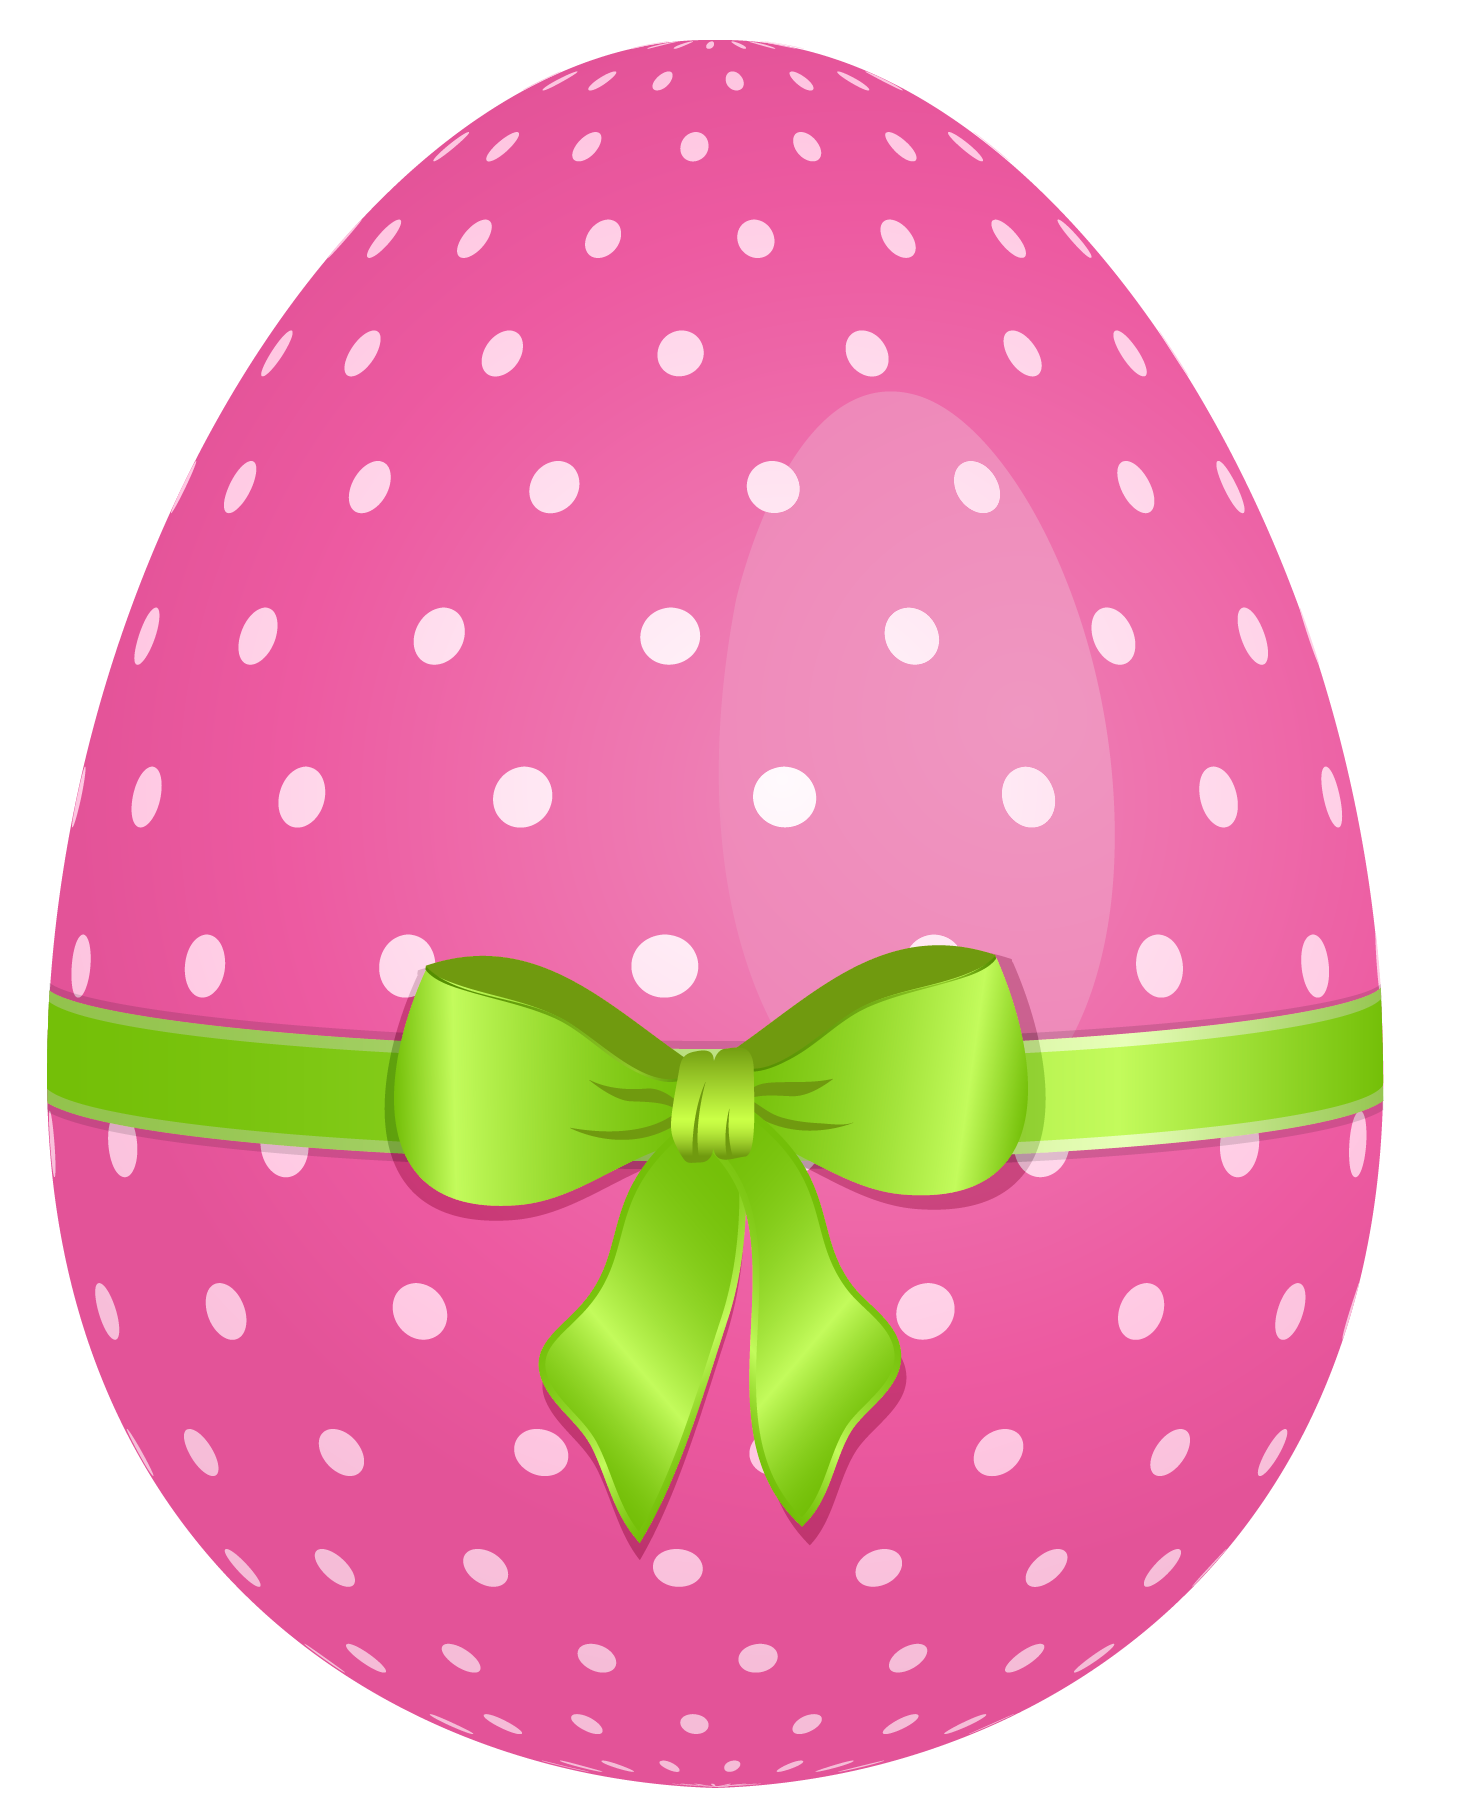 Pink Dotted Egg